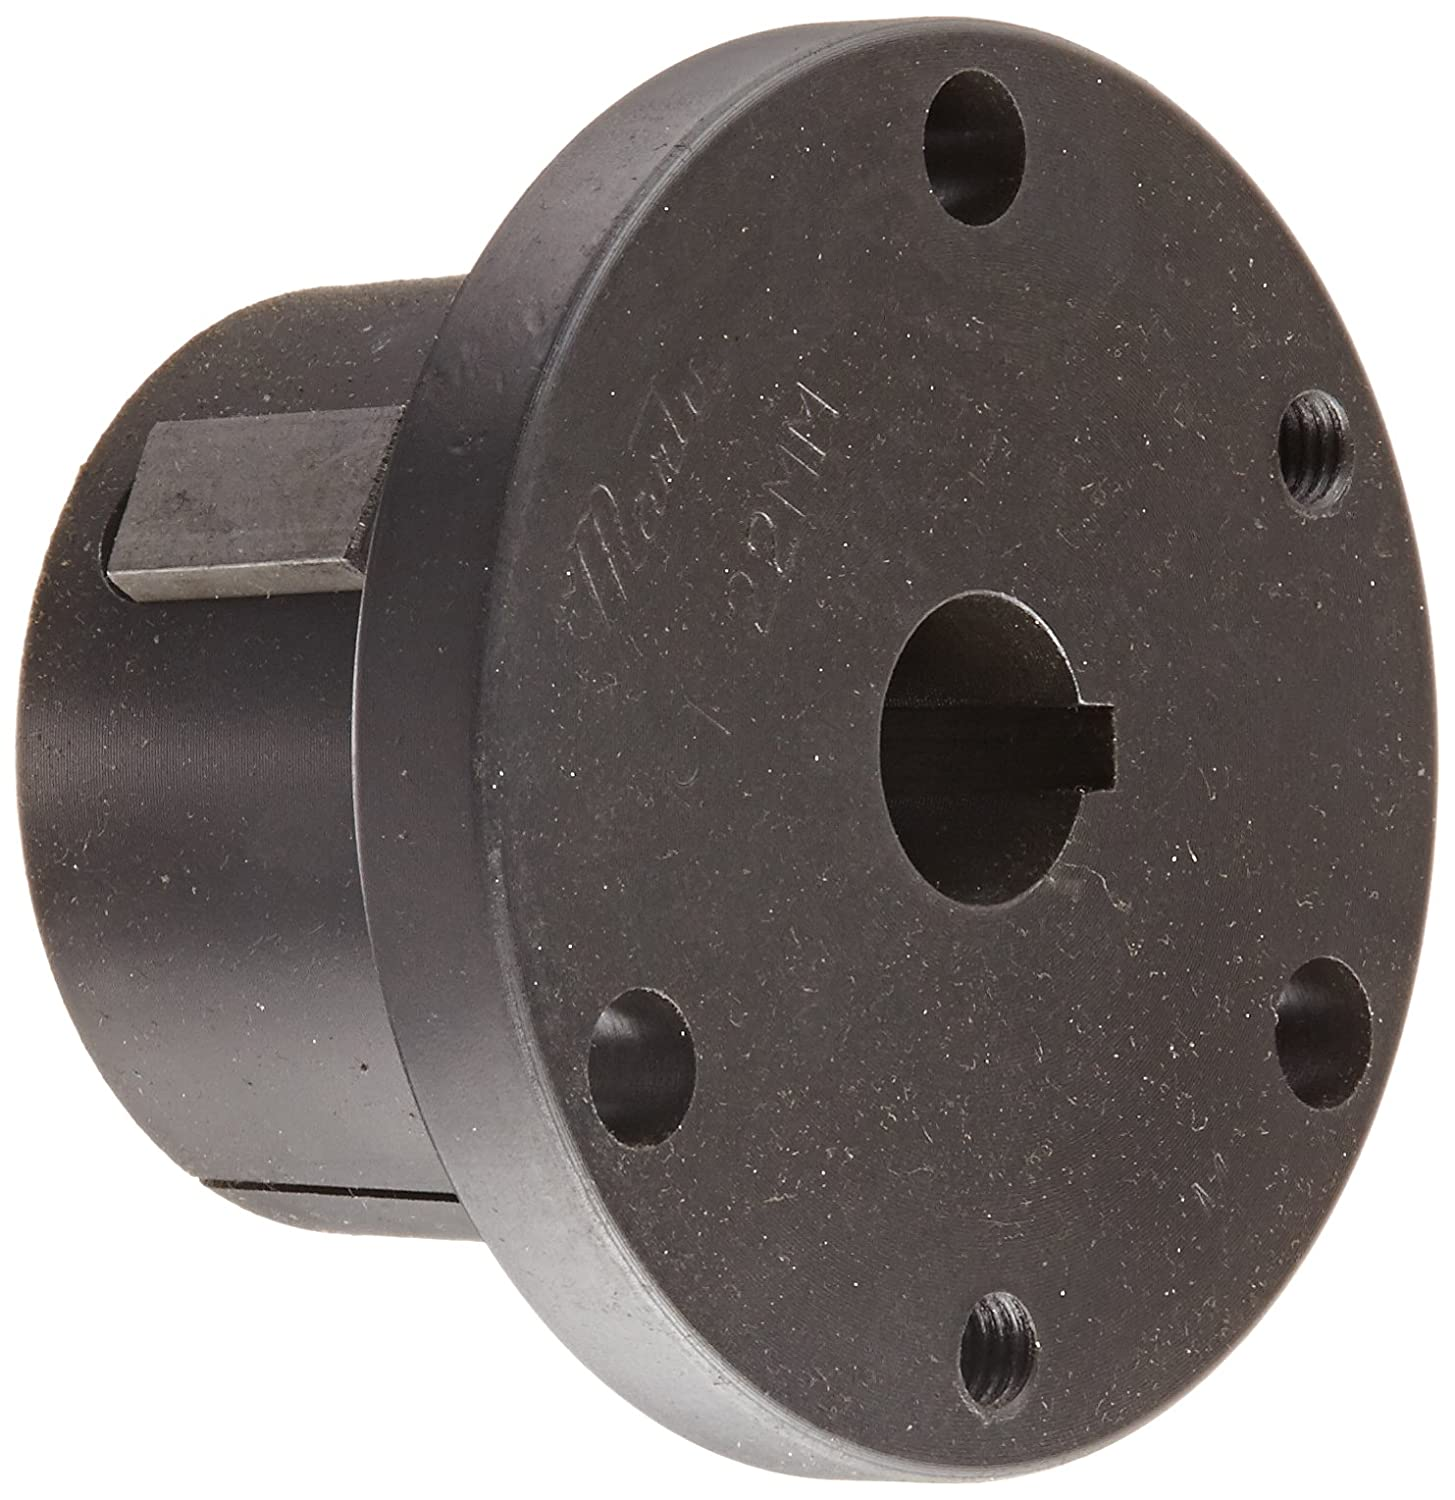 50.8 mm OD Ruland MBS51-25-12-A 2024 or 7075 Aluminum Hubs Bellows Coupling Set Screw Style 25 mm x 12 mm Bores 58.7 mm Length